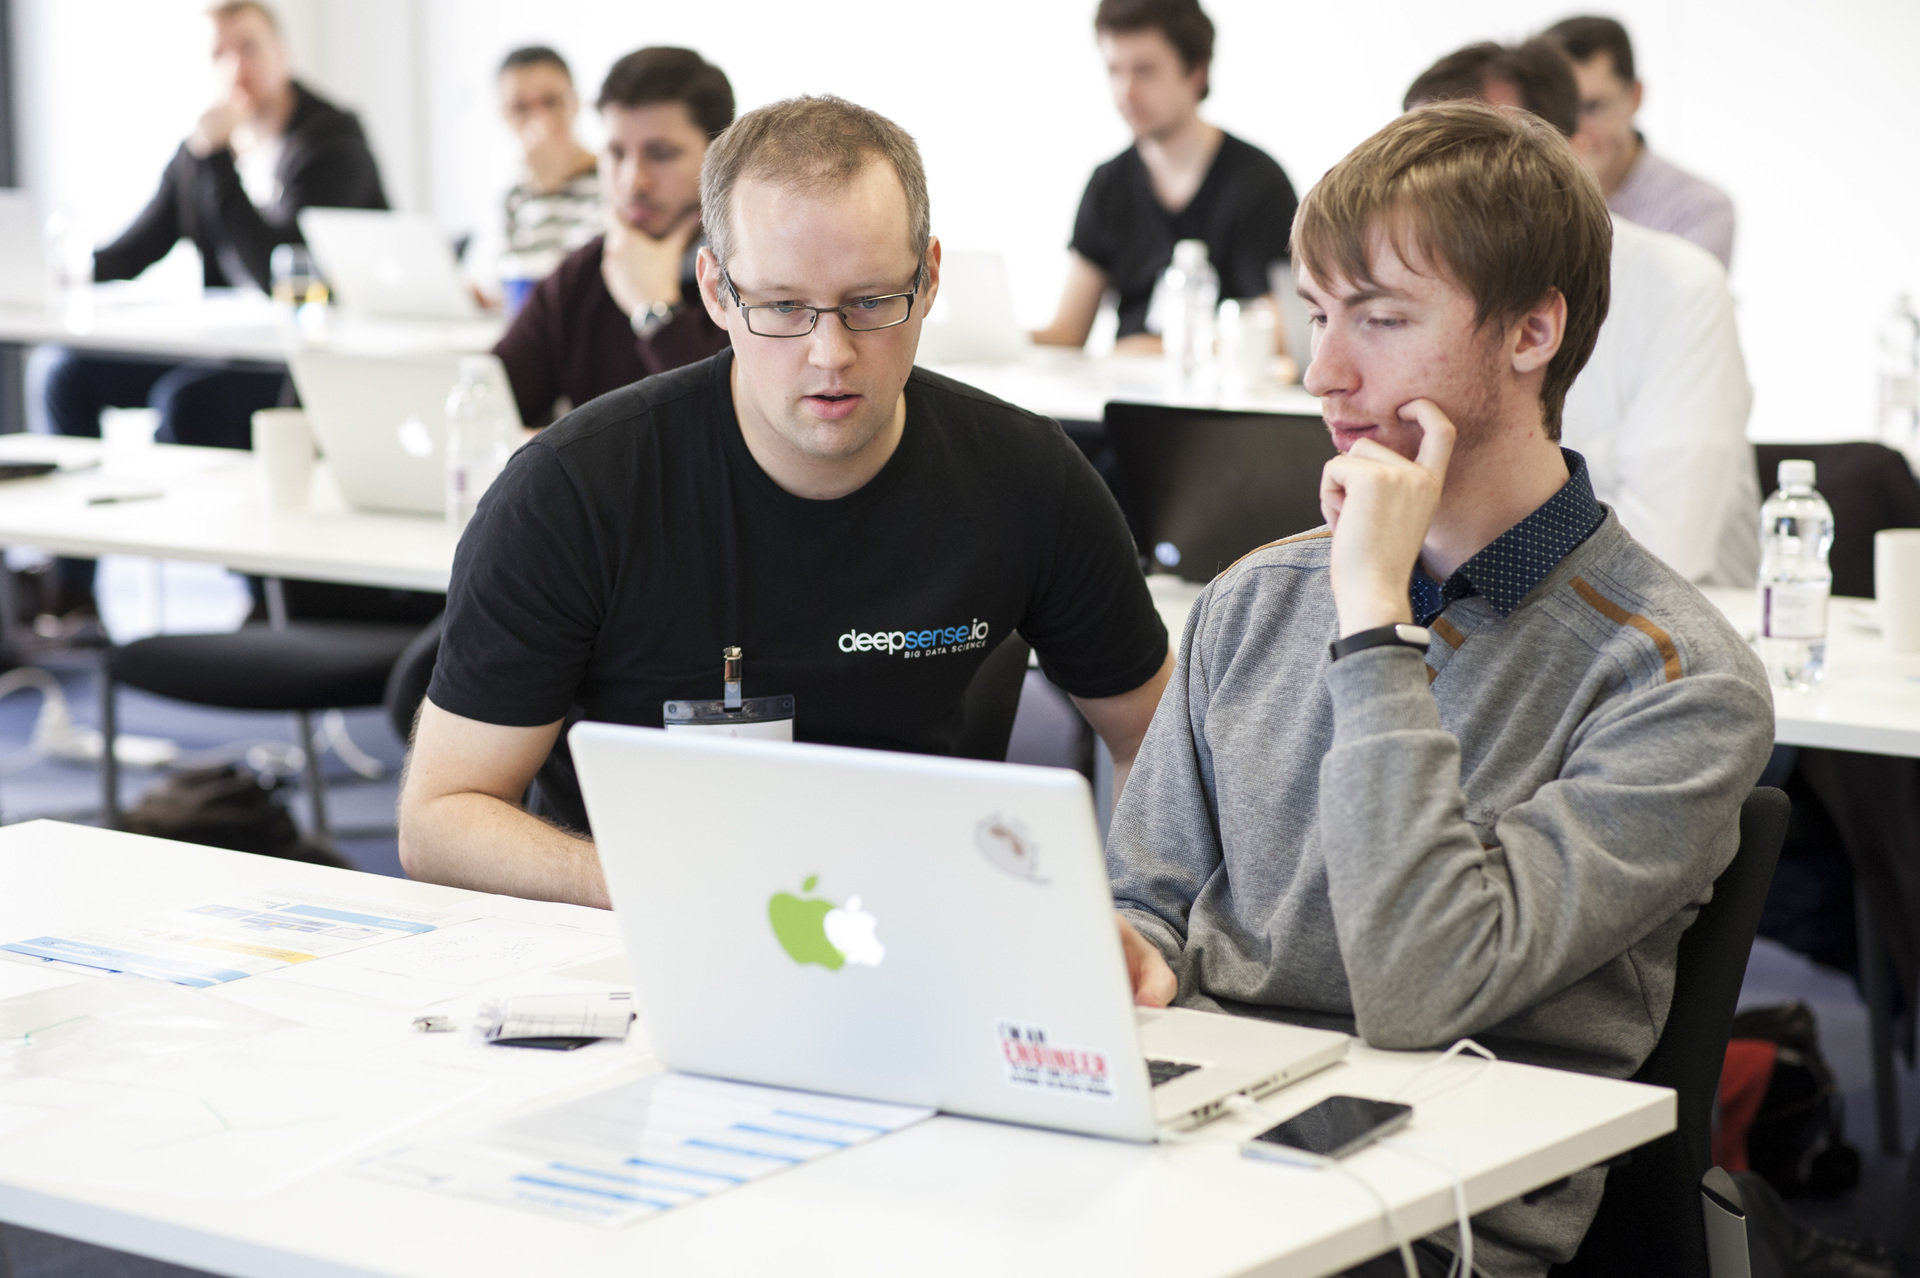 Intel brings data science to Polish universities with an event series powered by deepsense.io